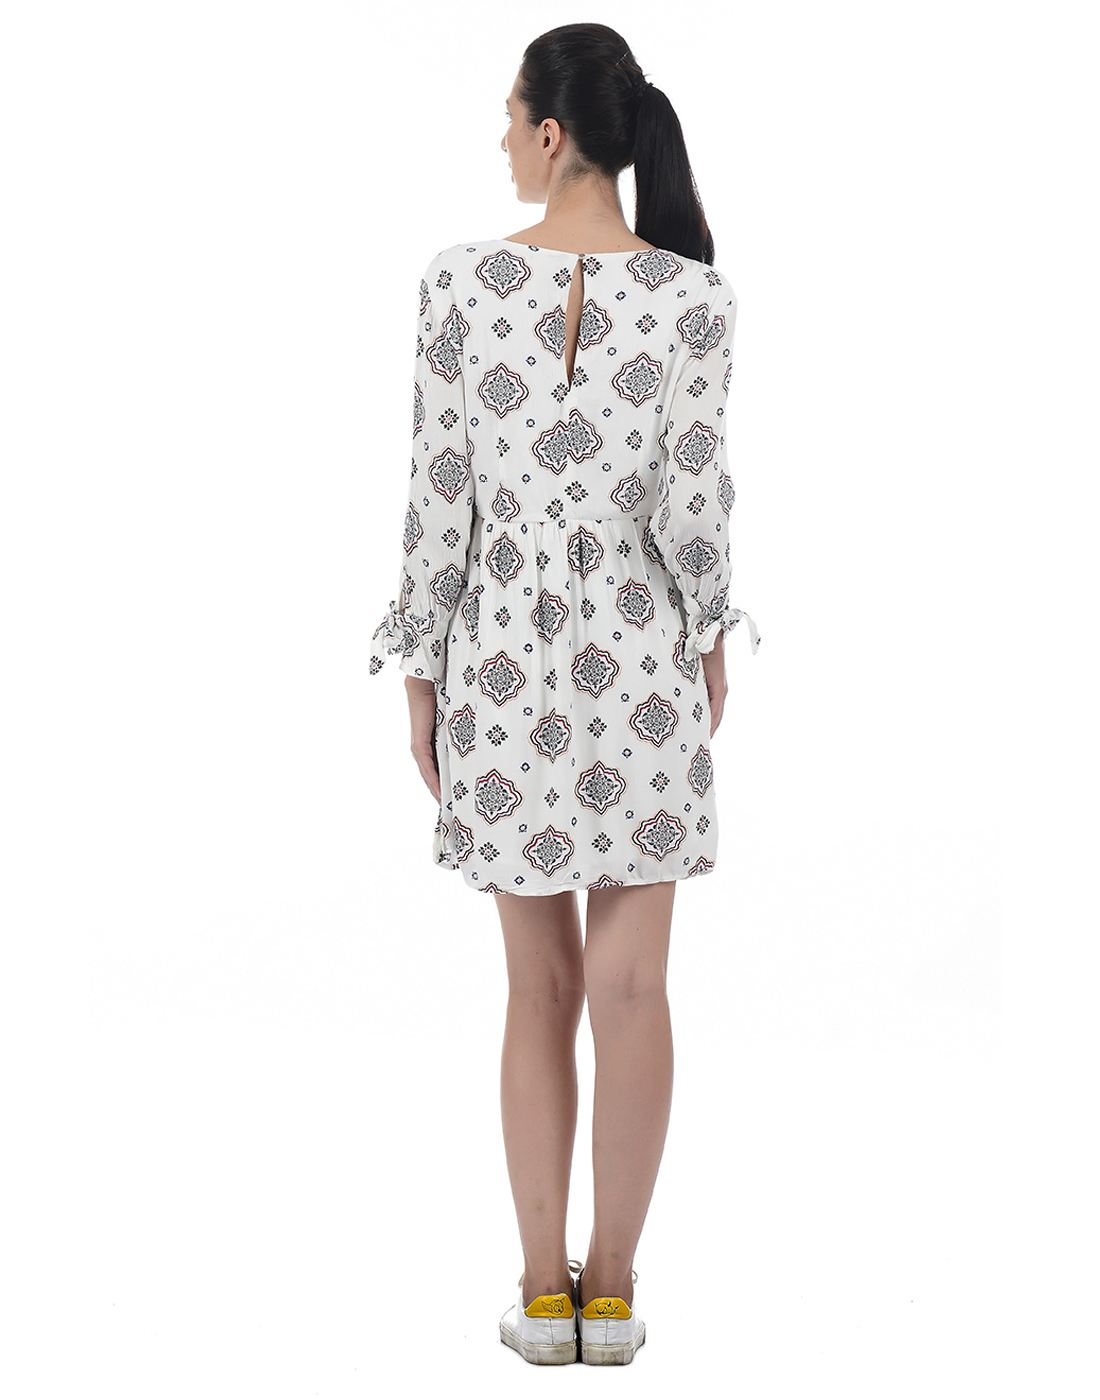 Only Women Casual White Dress